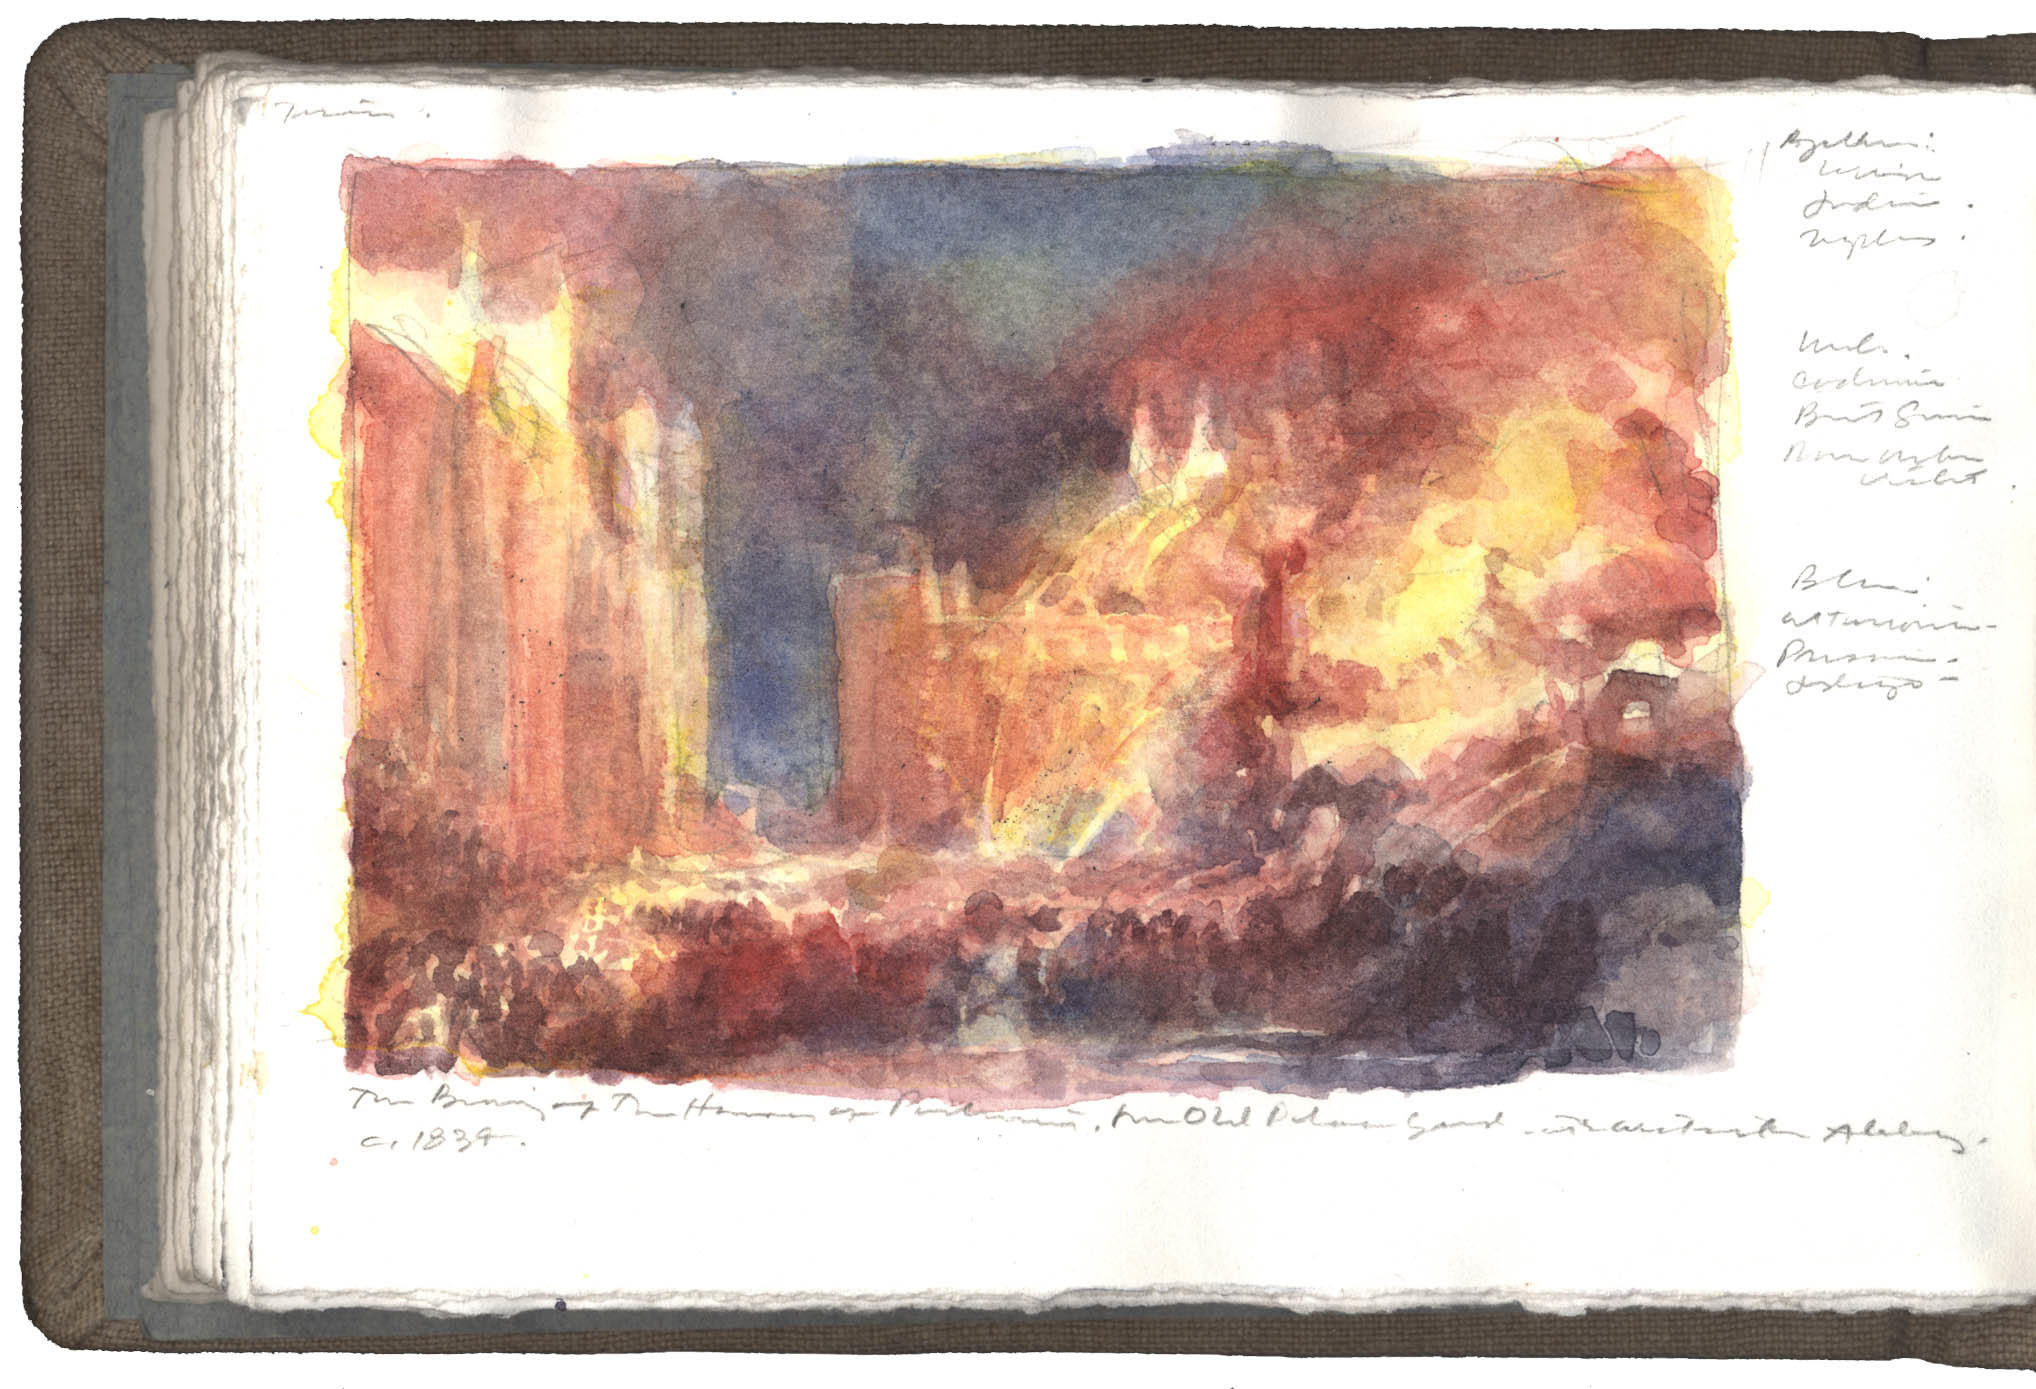 Copy of a watercolor by J.M.W. Turner image